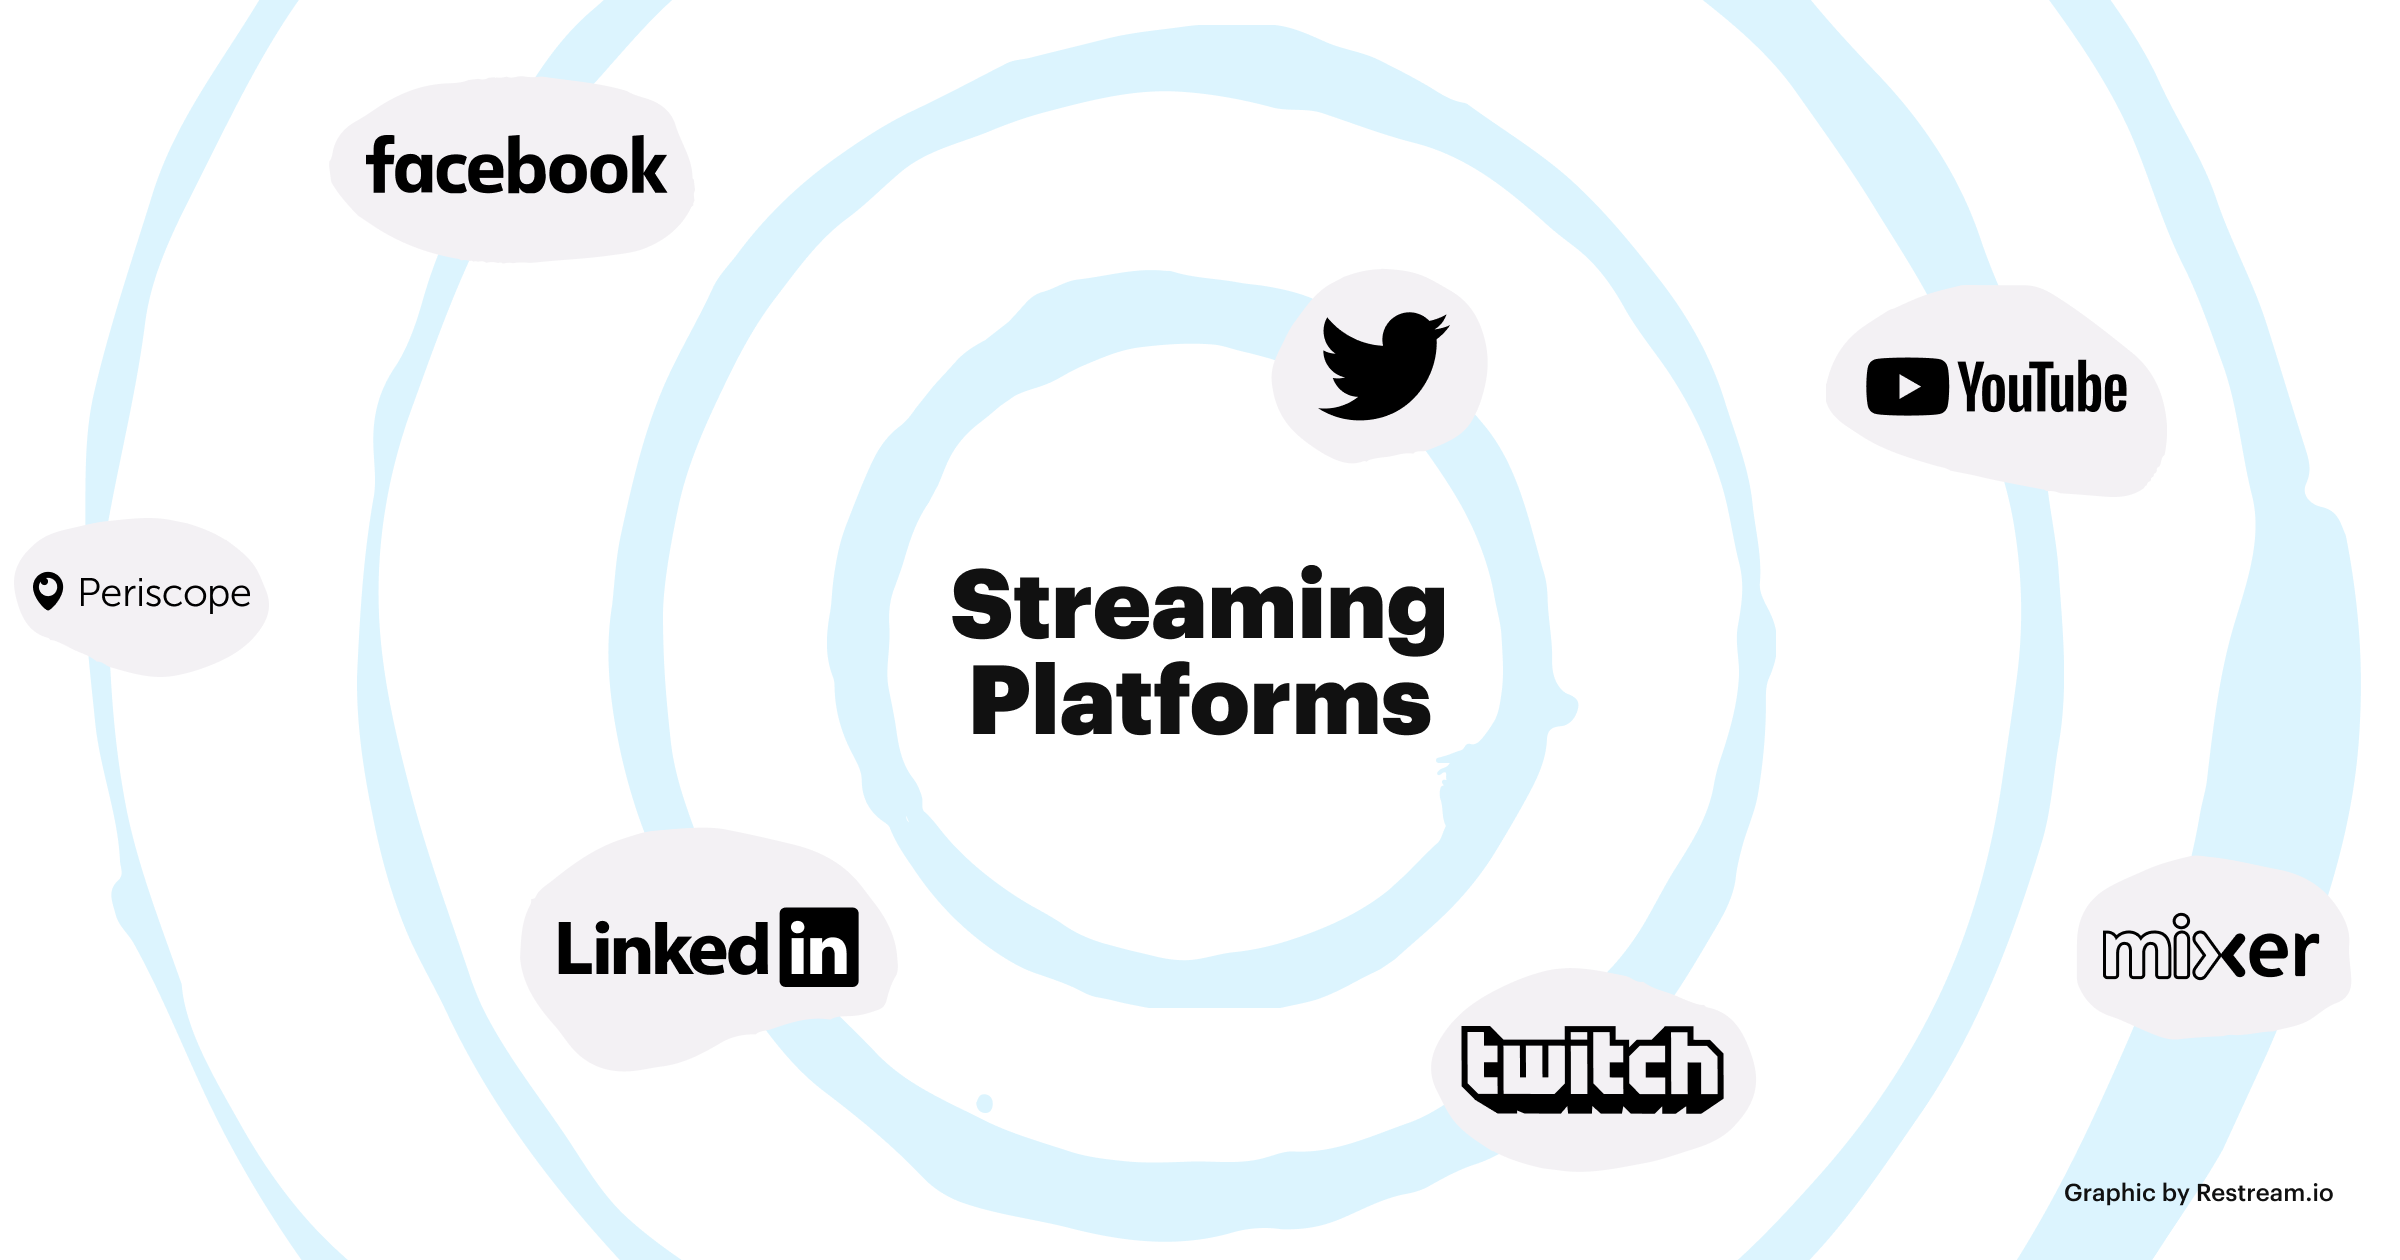 Streaming platforms: Facebook, Twitch, YouTube, LinkedIn, Mixer, Periscope